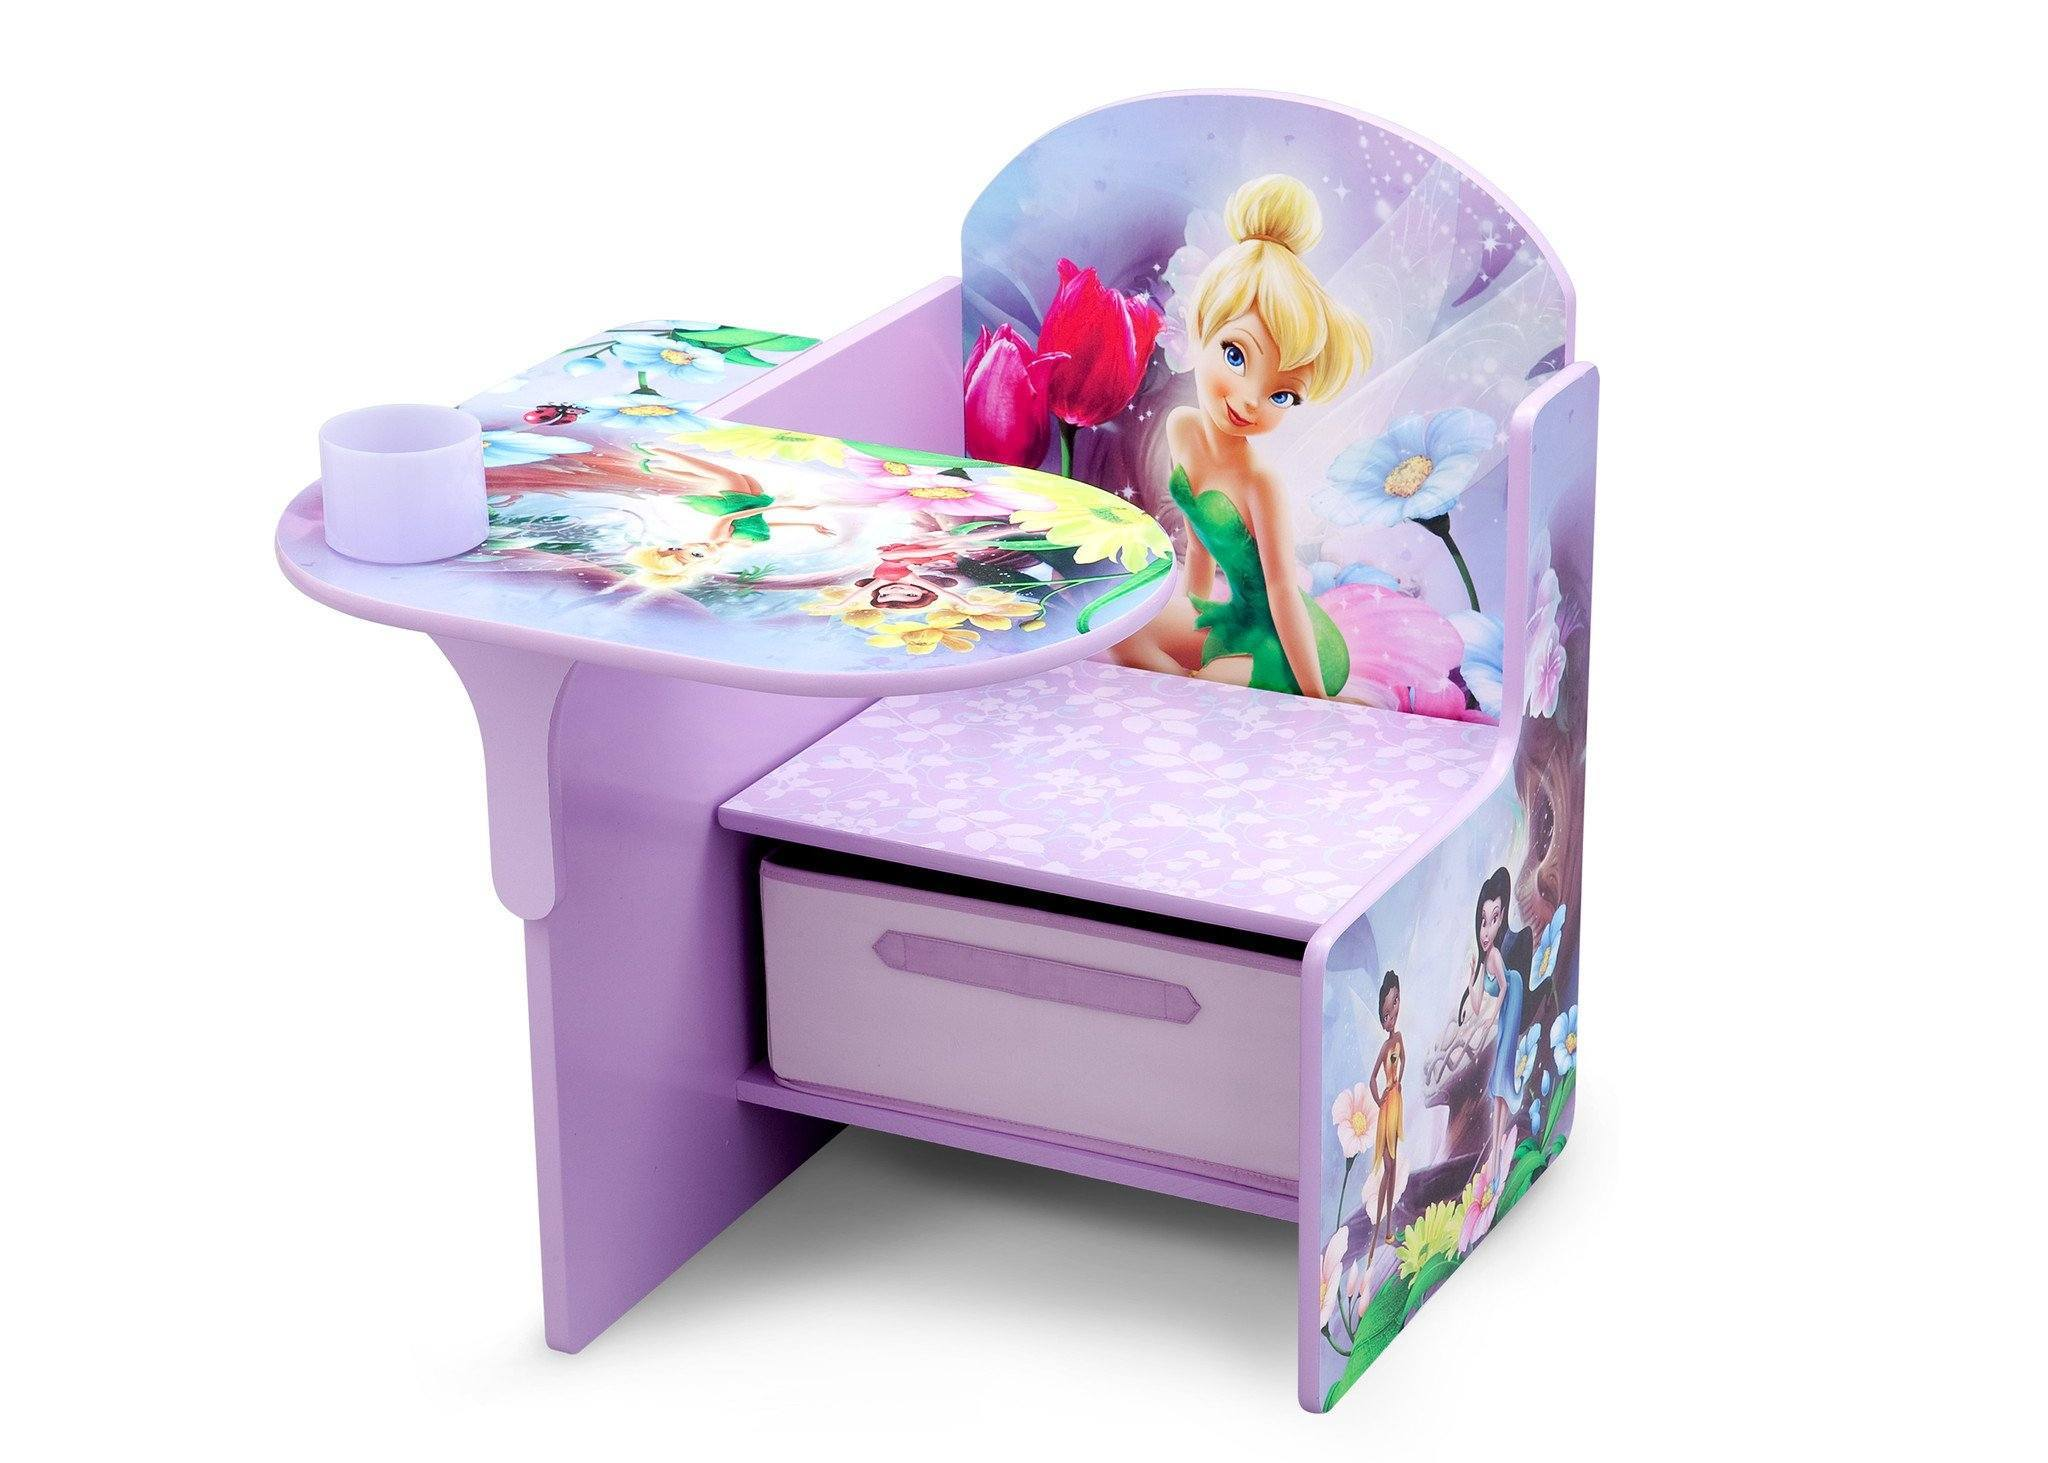 Delta Children Style 1 Fairies Chair Desk with Storage Bin, Left View